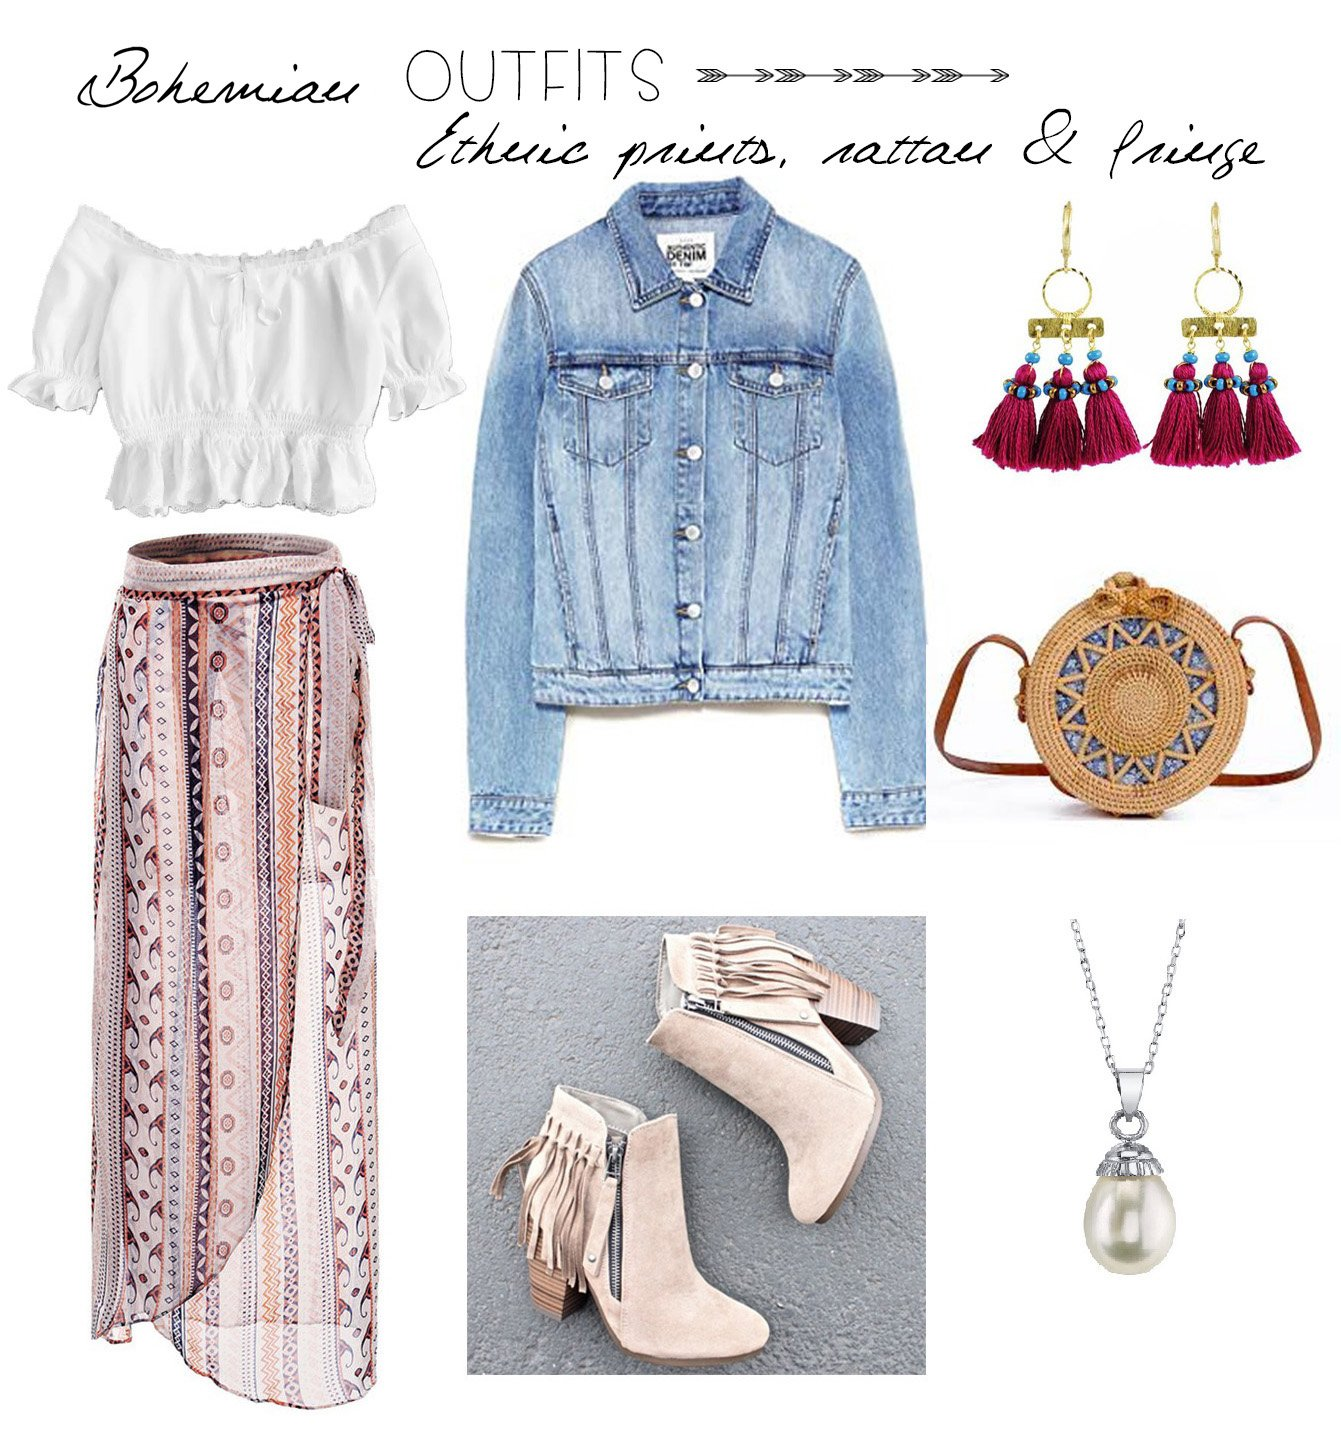 e6cd12d98b5b06 It doesn't get more boho than this. A more feminine approach to bohemian  style, with the mandatory ethnic prints in the mix, acid wash denim, ...